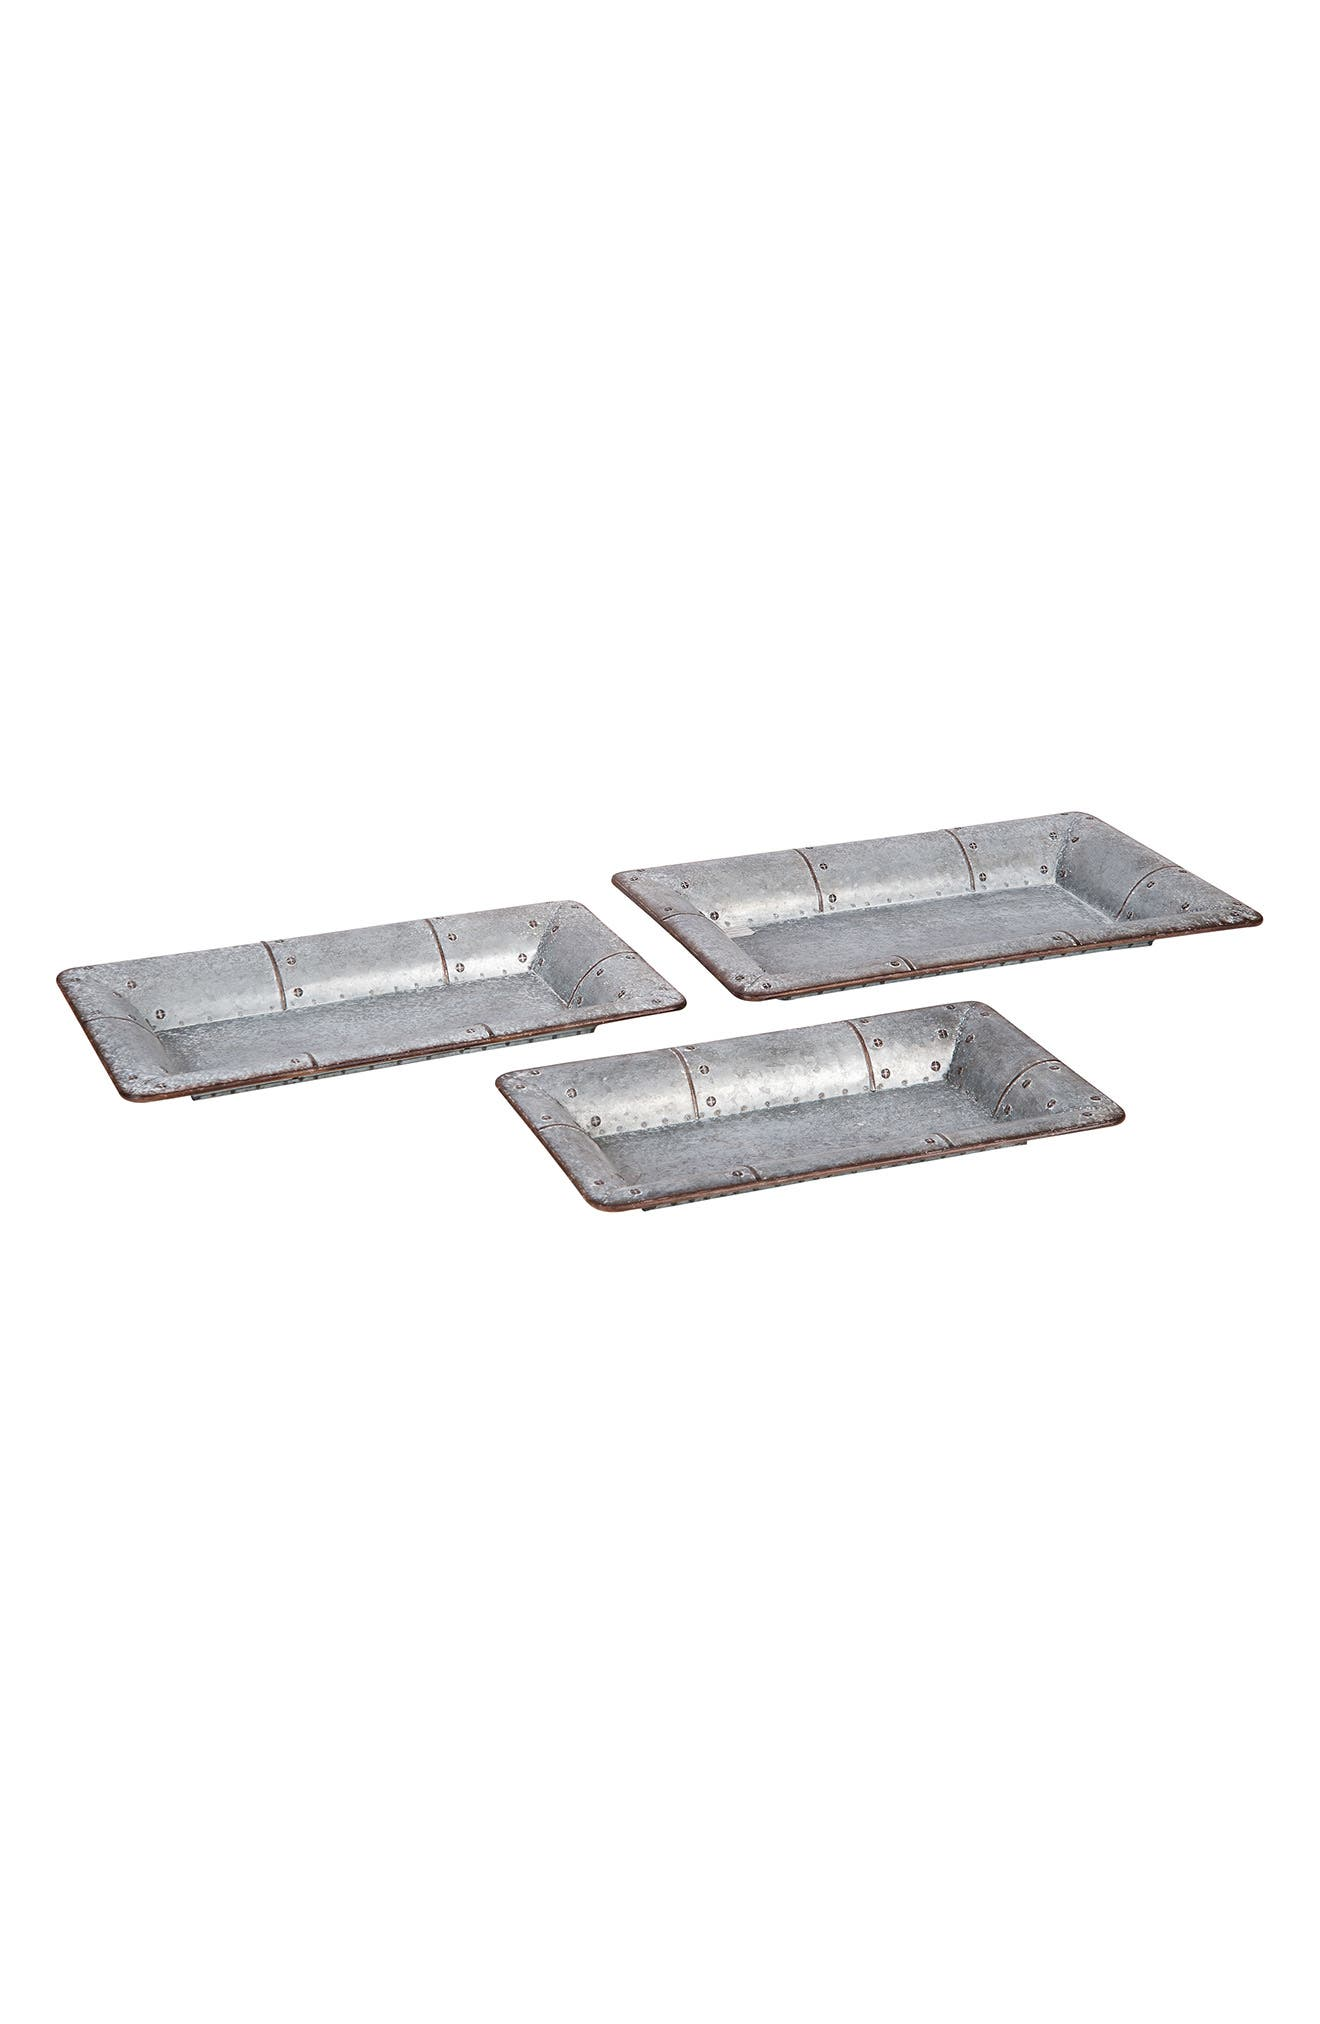 Set of 3 Hammered Trays,                             Main thumbnail 1, color,                             Metal